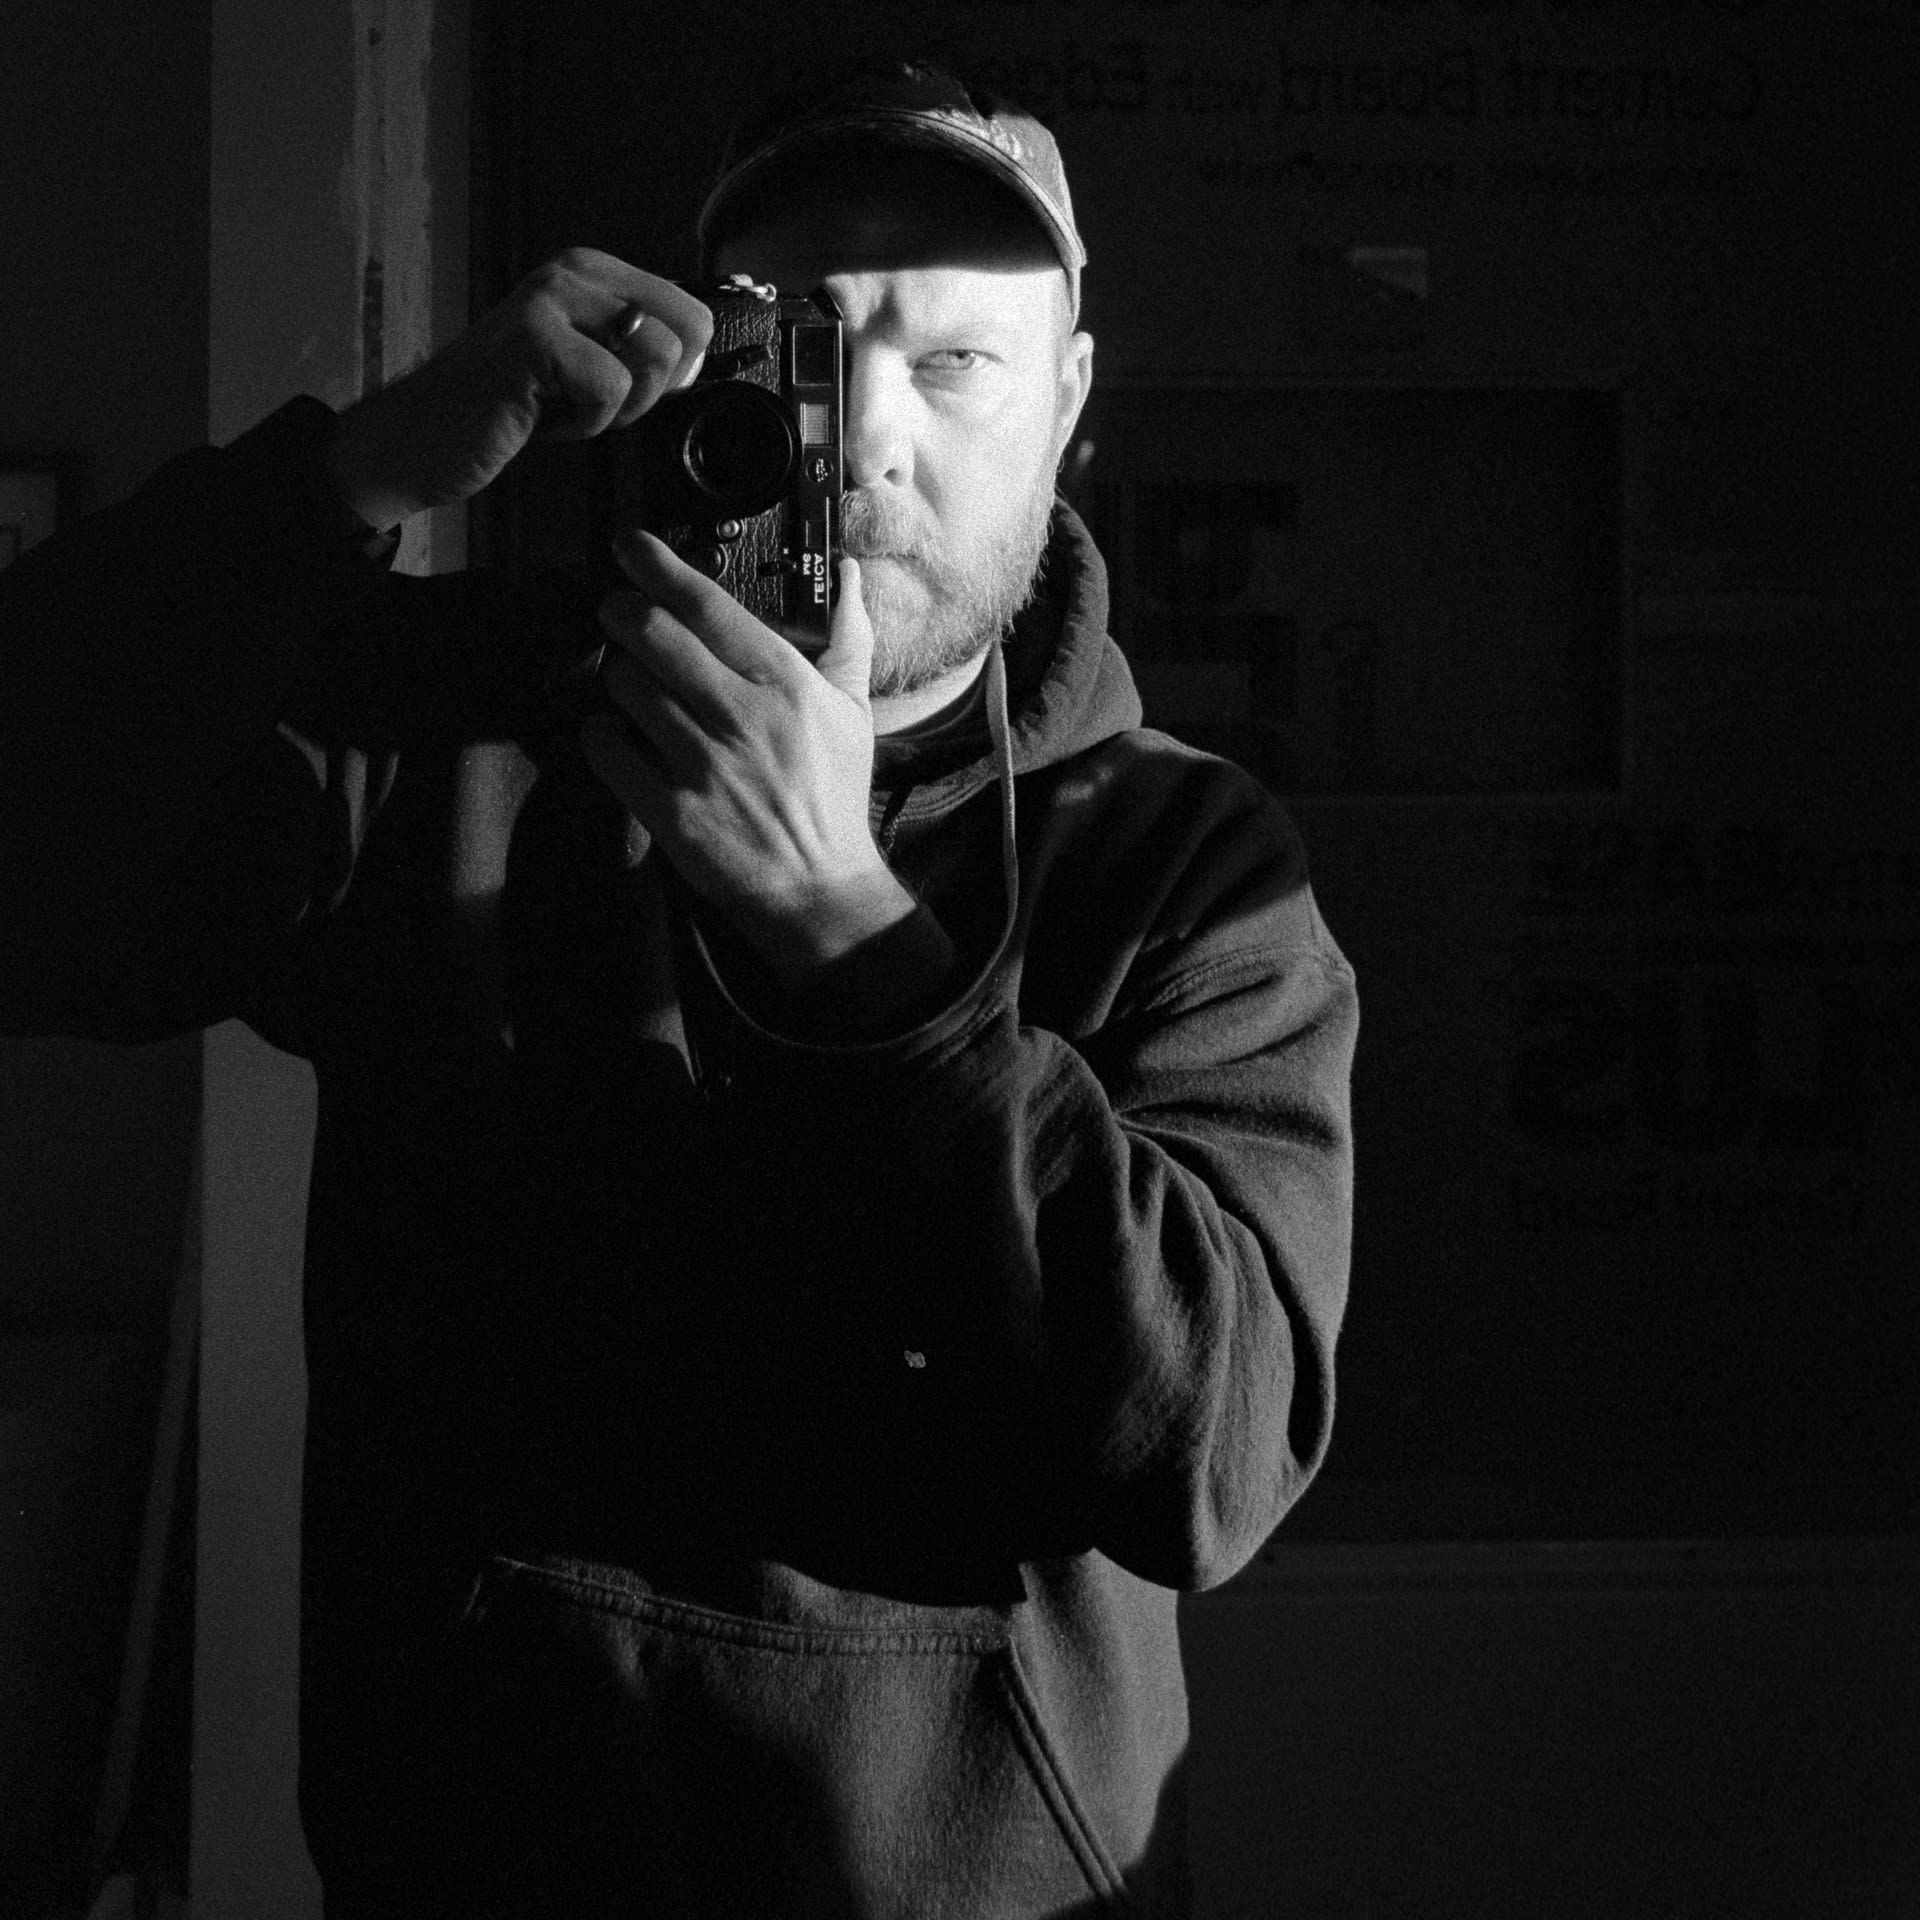 self portrait with leica m6 in mirror